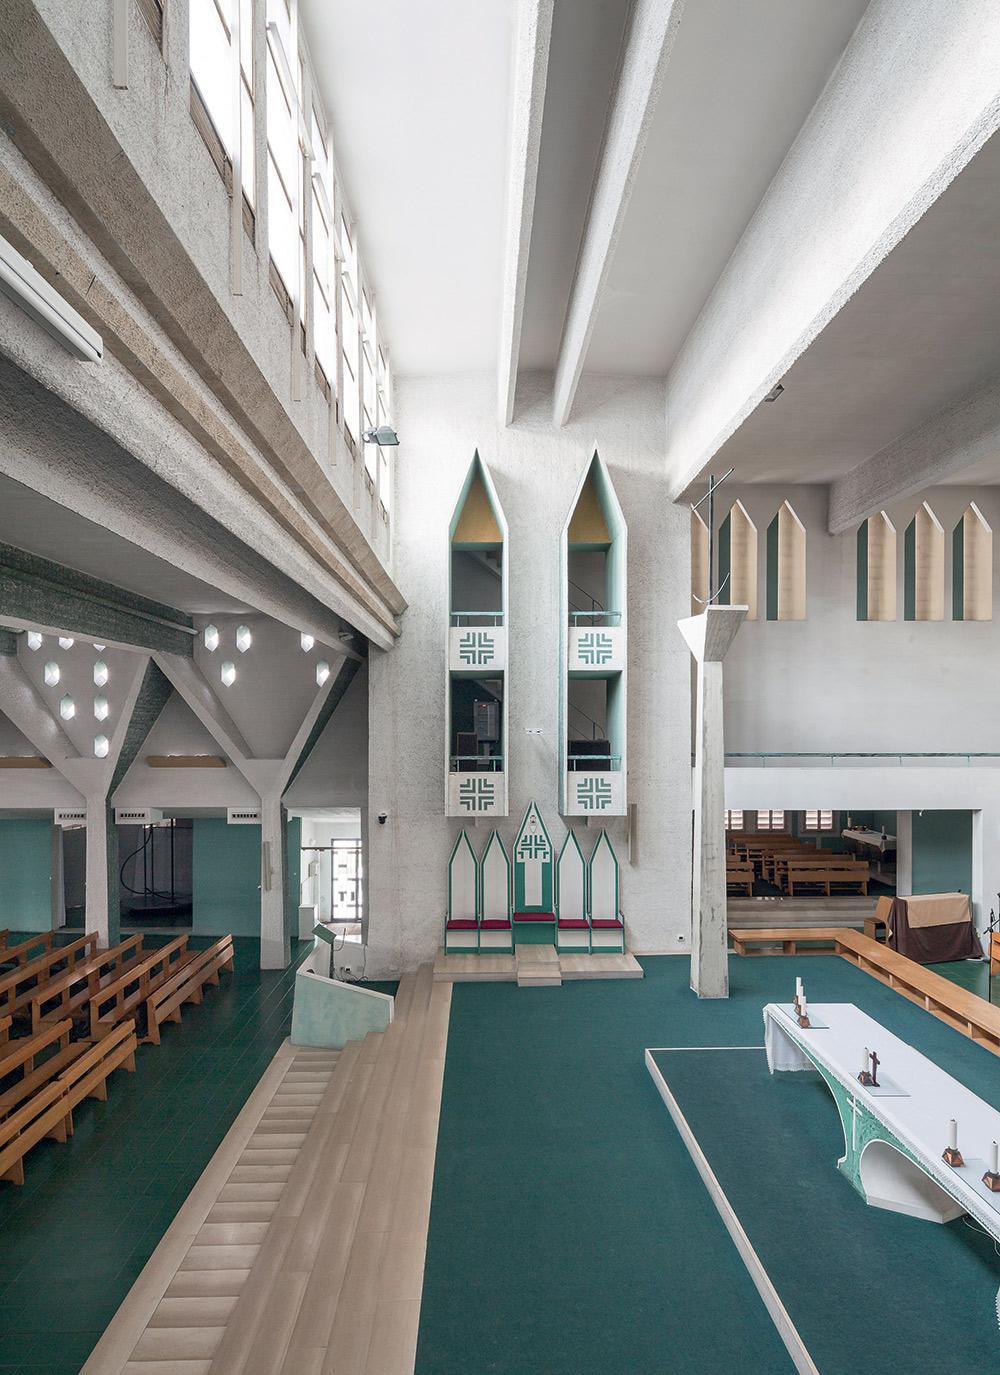 Gio Ponti interior design inside Concattedrale Gran Madre di Dio in The Eclectic Life and Work of Gio Ponti for A Collected Man London